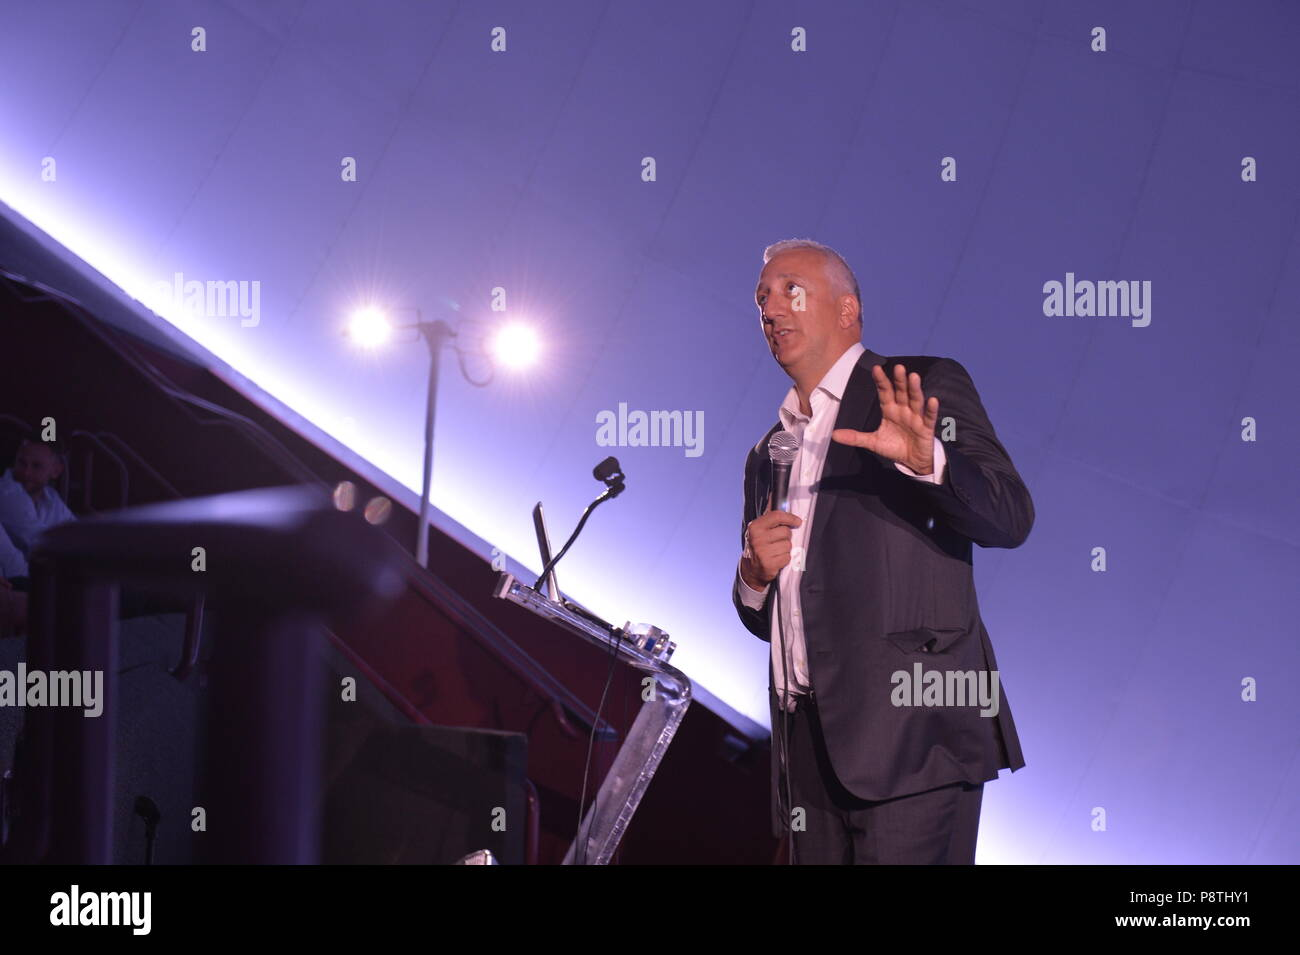 Garden City, New York, USA. June 21, 2018. Former NASA space shuttle astronaut MIKE MASSIMINO, a Long Island native, gestures as he stands at podium on stage during his free lecture in the JetBlue Sky Theater Planetarium at the Cradle of Aviation Museum. - Stock Image